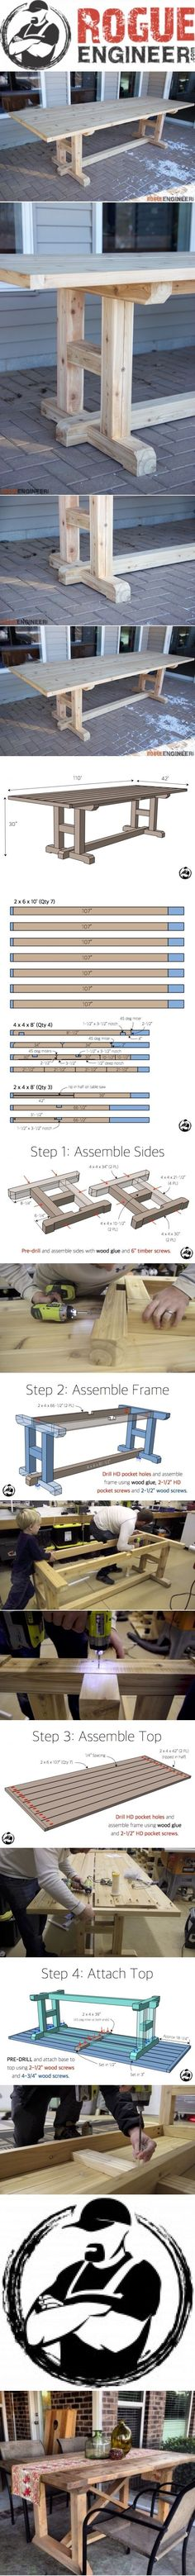 10+ images about Furniture to build on Pinterest | Upholstery, Compact living and Easy diy